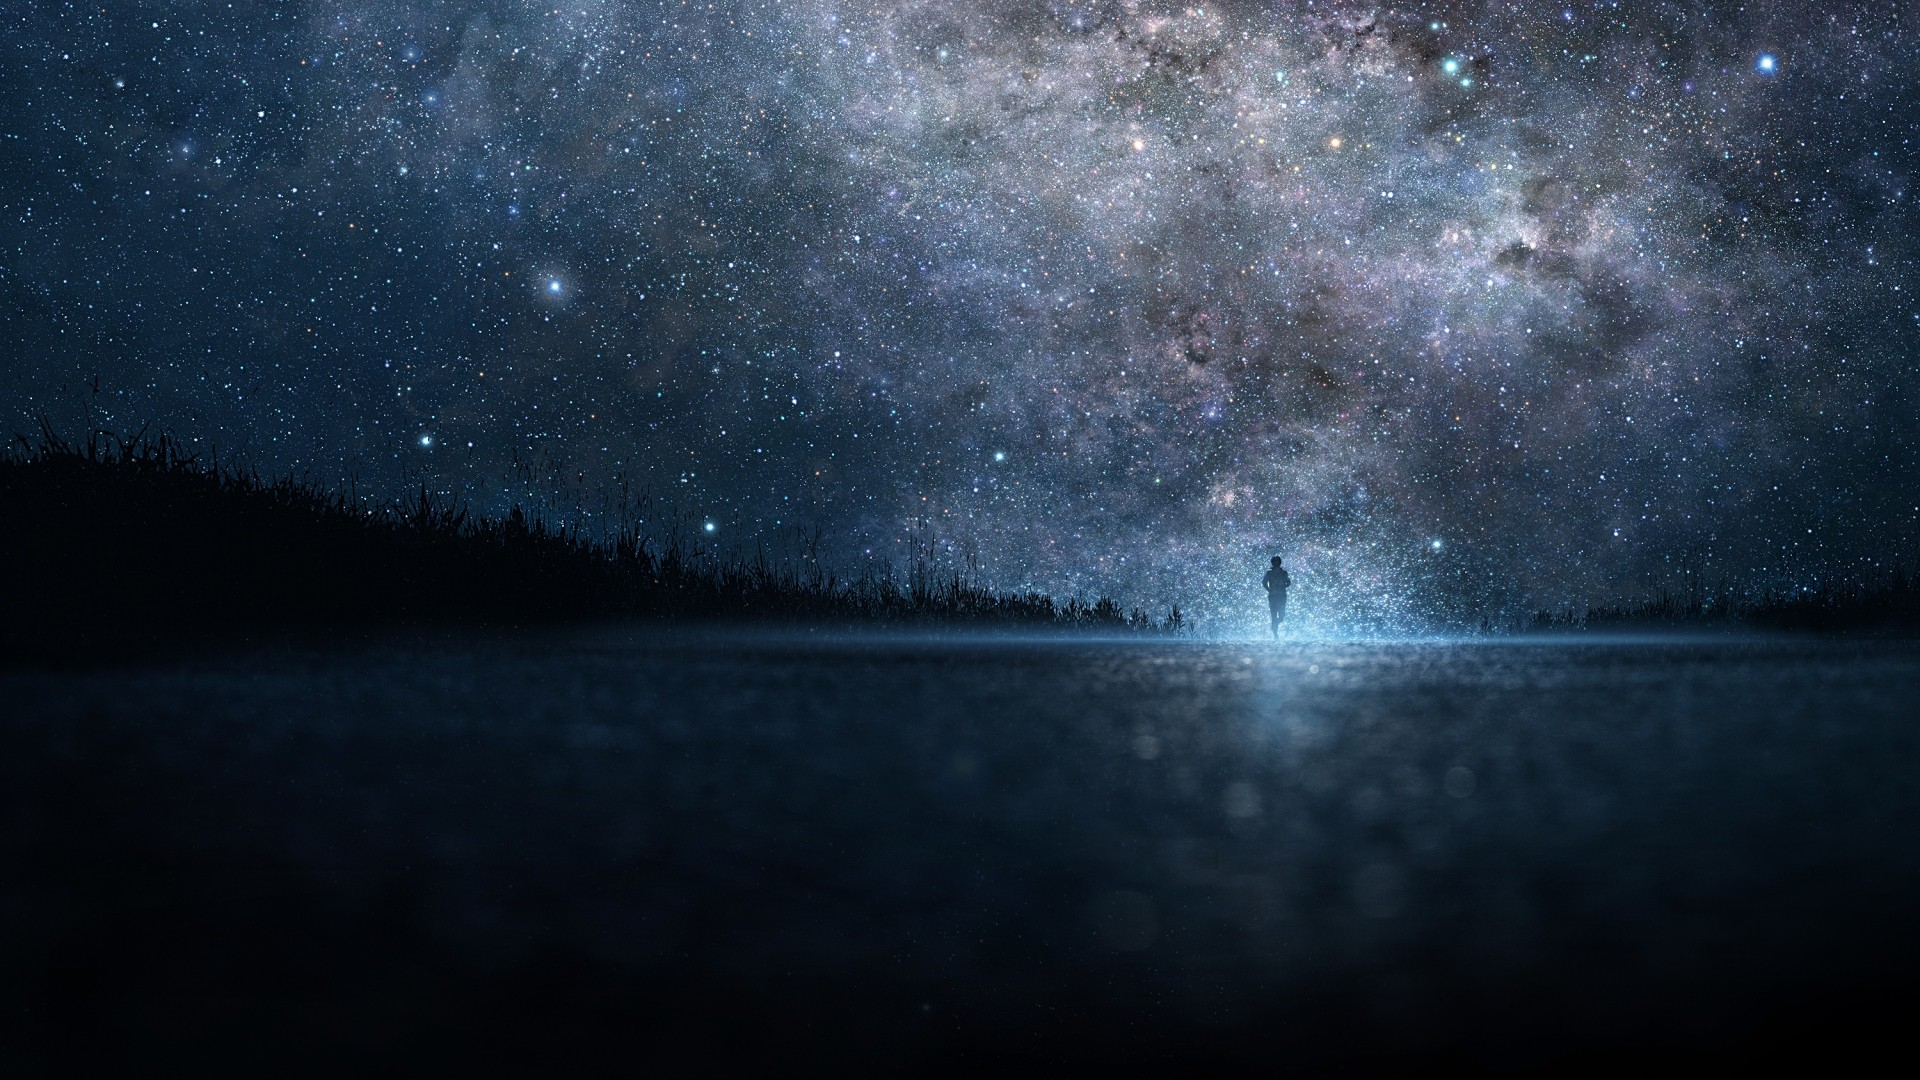 Space wallpaper hd download free awesome high - Iphone 6 space wallpaper download ...